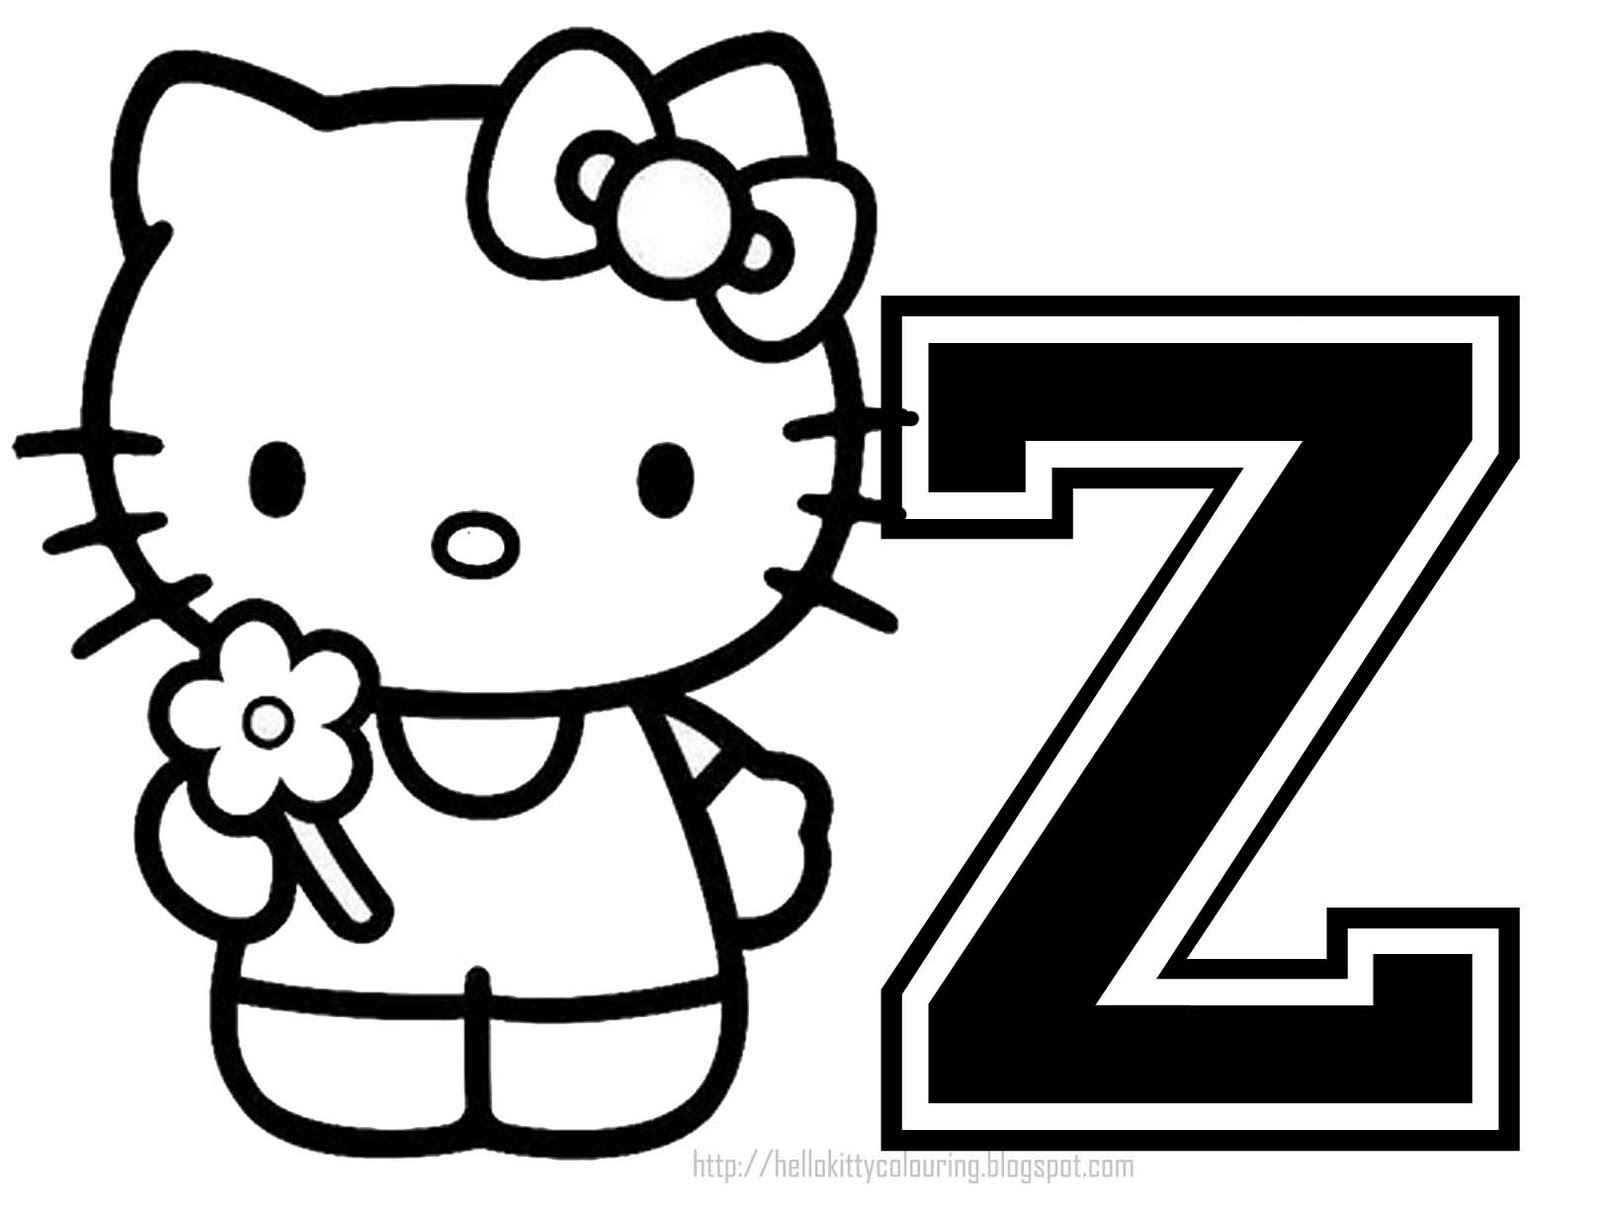 - HELLO KITTY COLORING: PERSONALIZED COLORING PAGE INITIAL LETTER